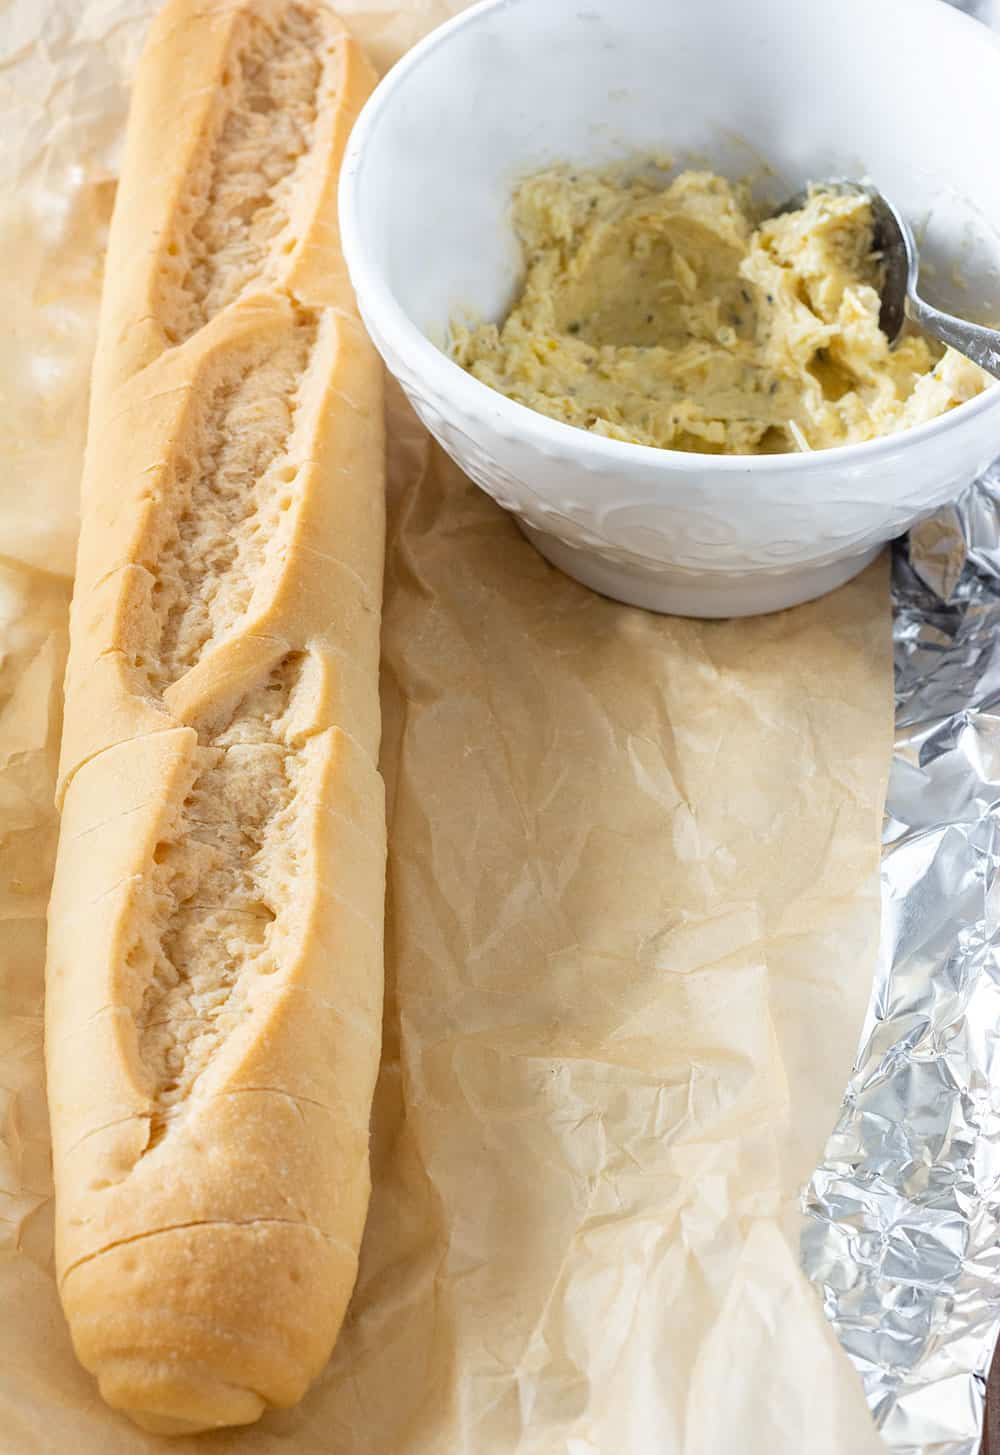 Garlic bread ingredients, baguette and garlic butter in a white bowl